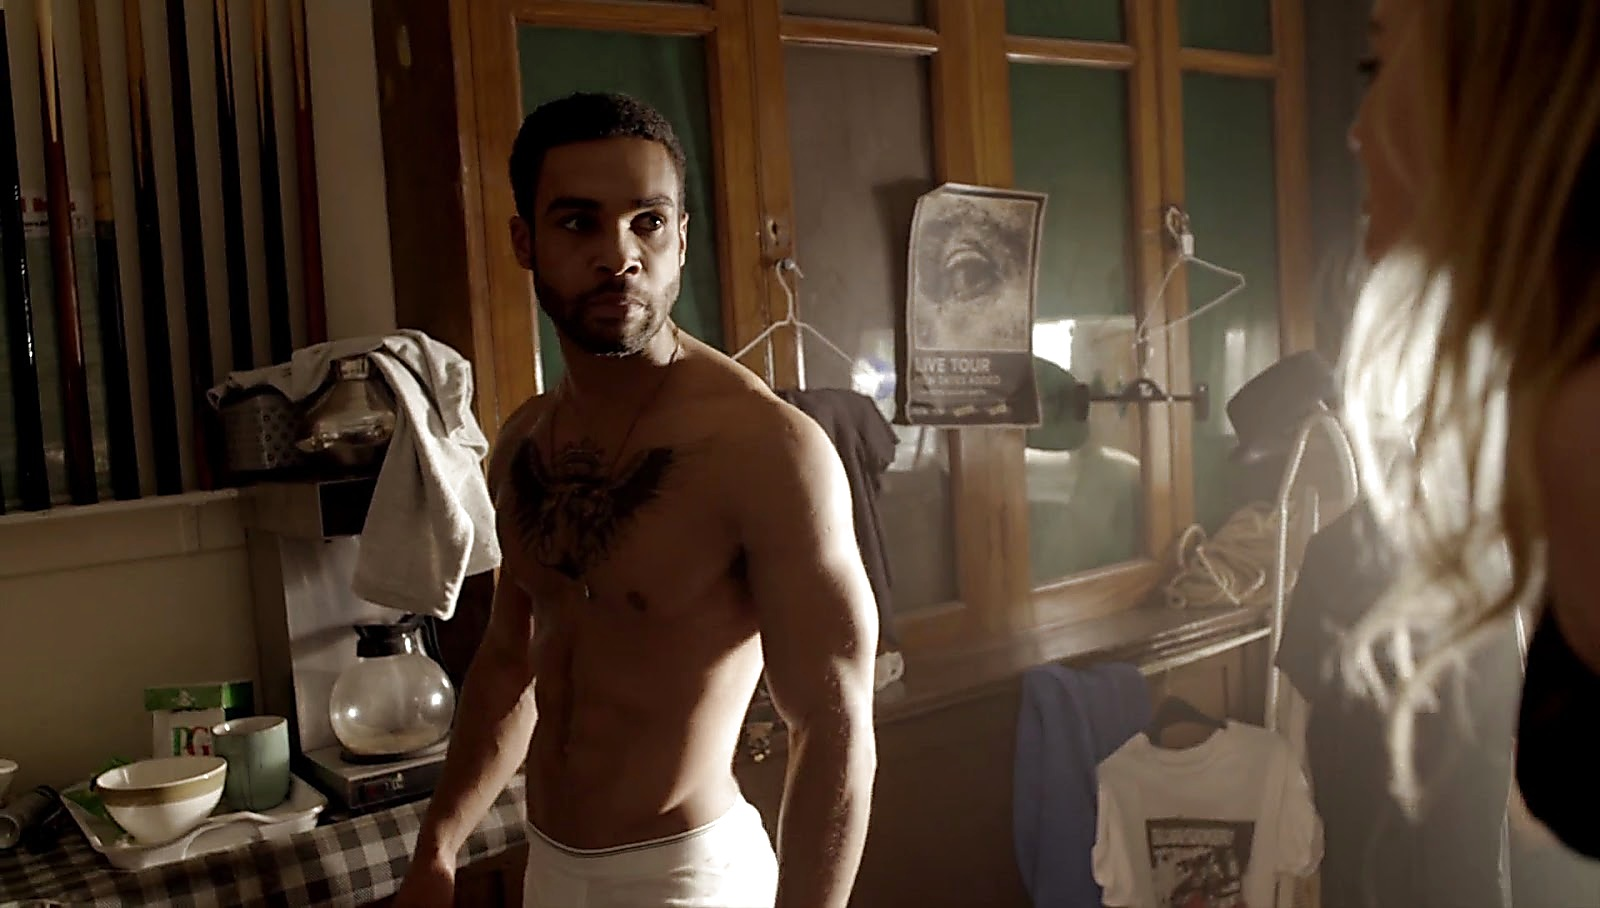 Lucien Laviscount sexy shirtless scene April 15, 2017, 12pm